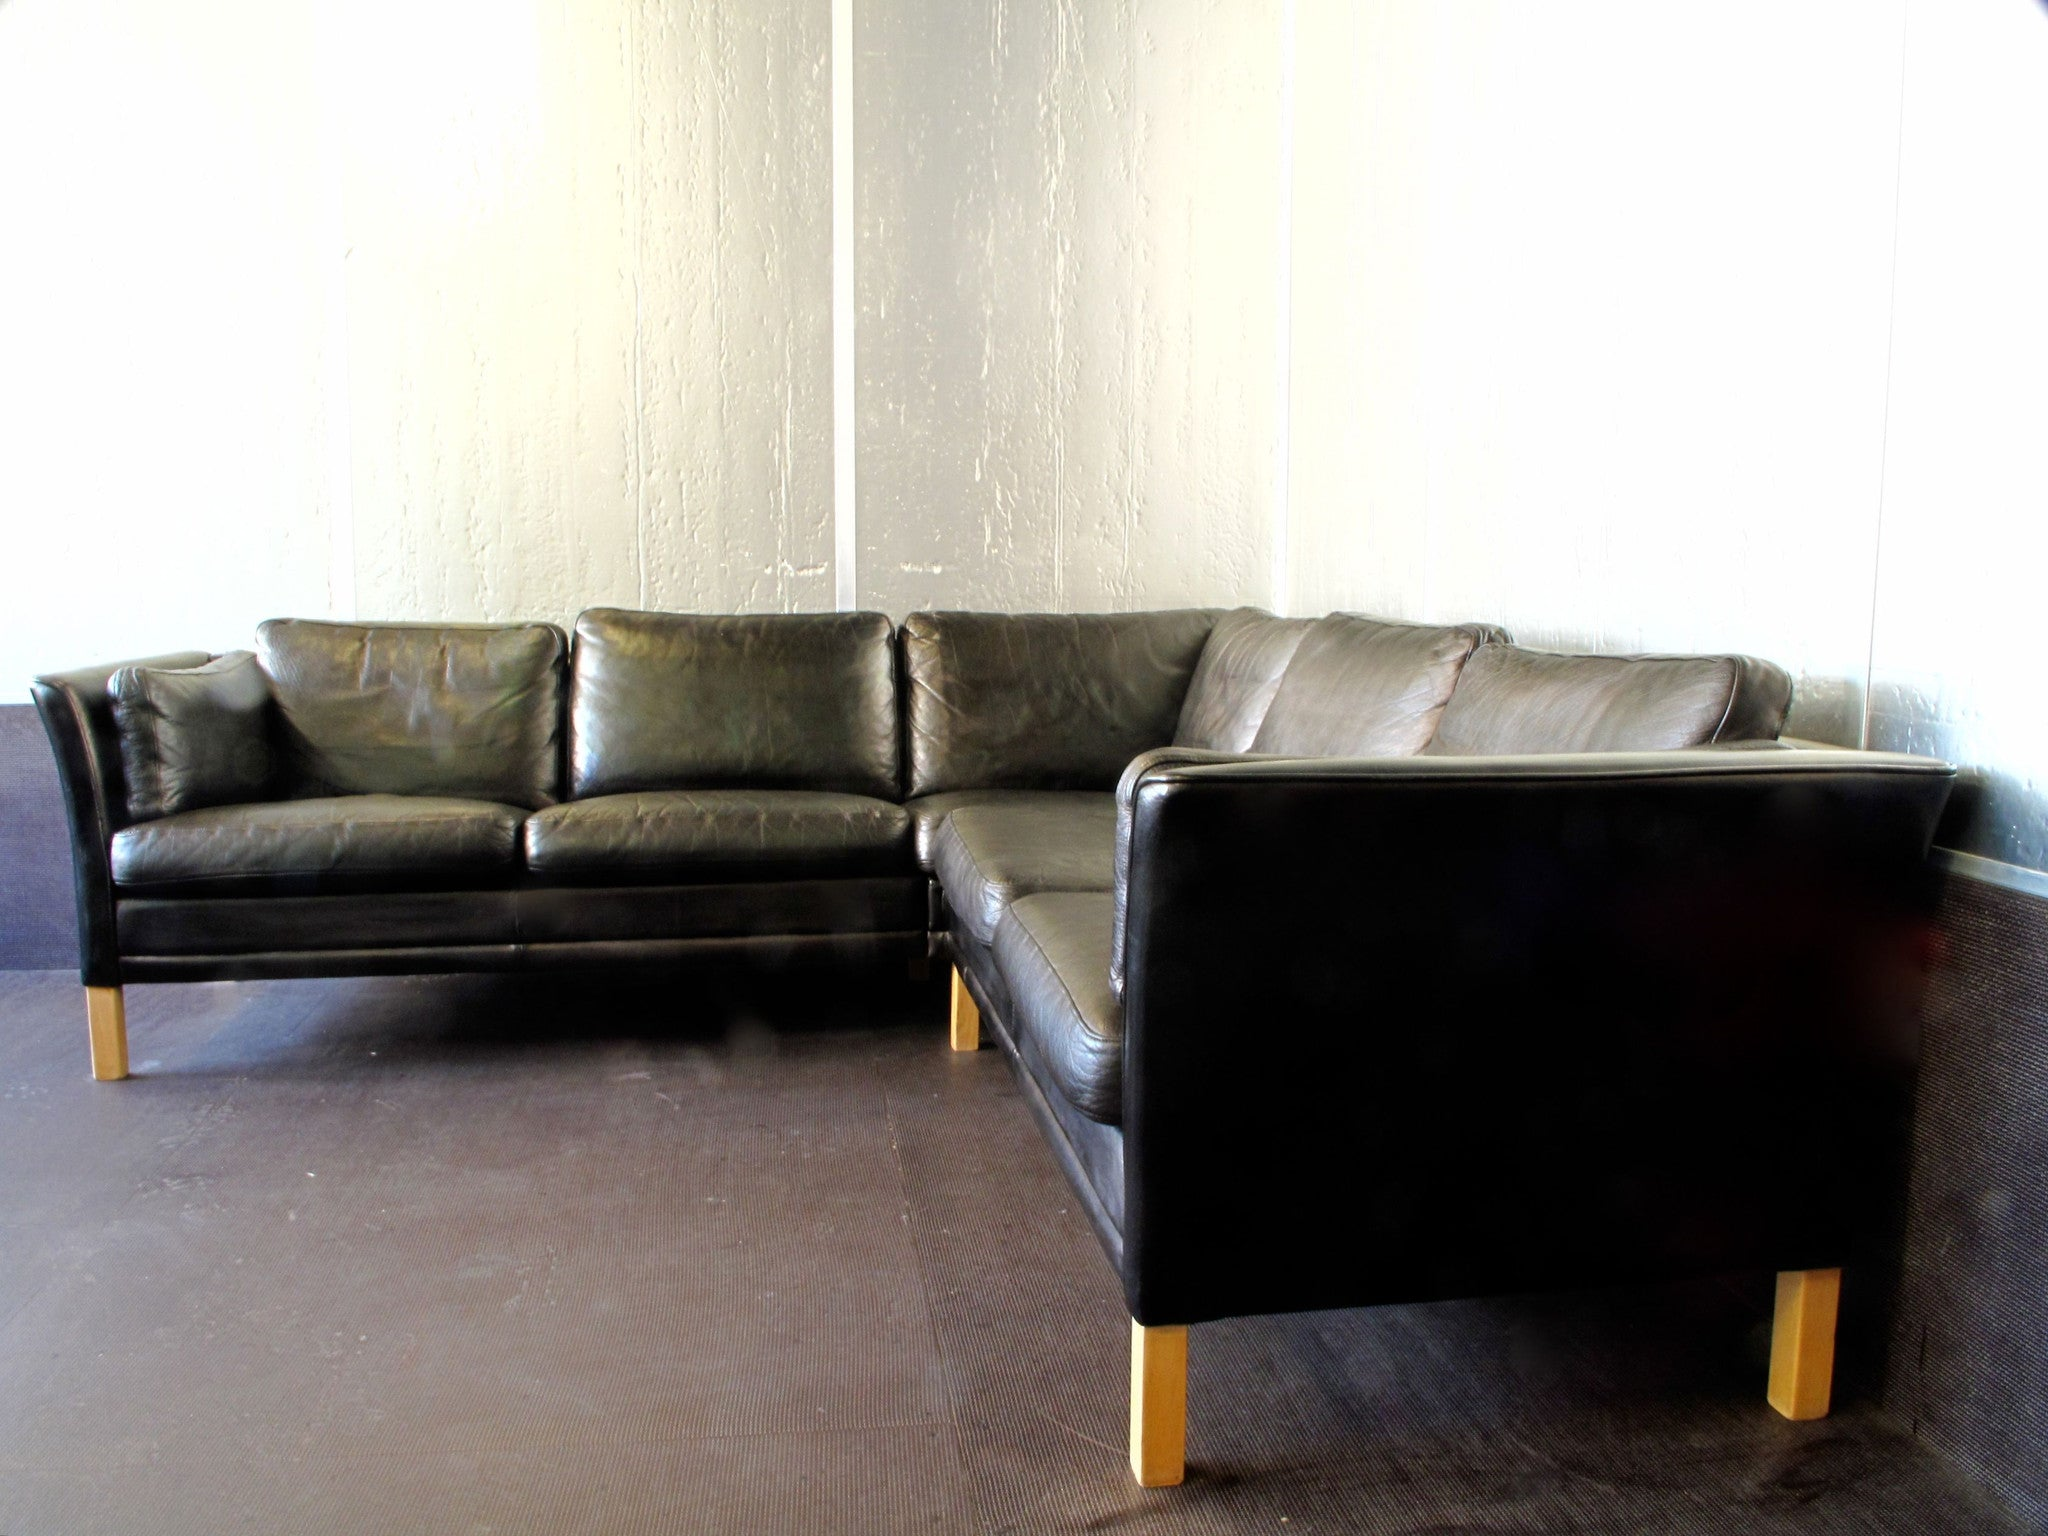 L-shaped leather sofa by Mogens Hansen